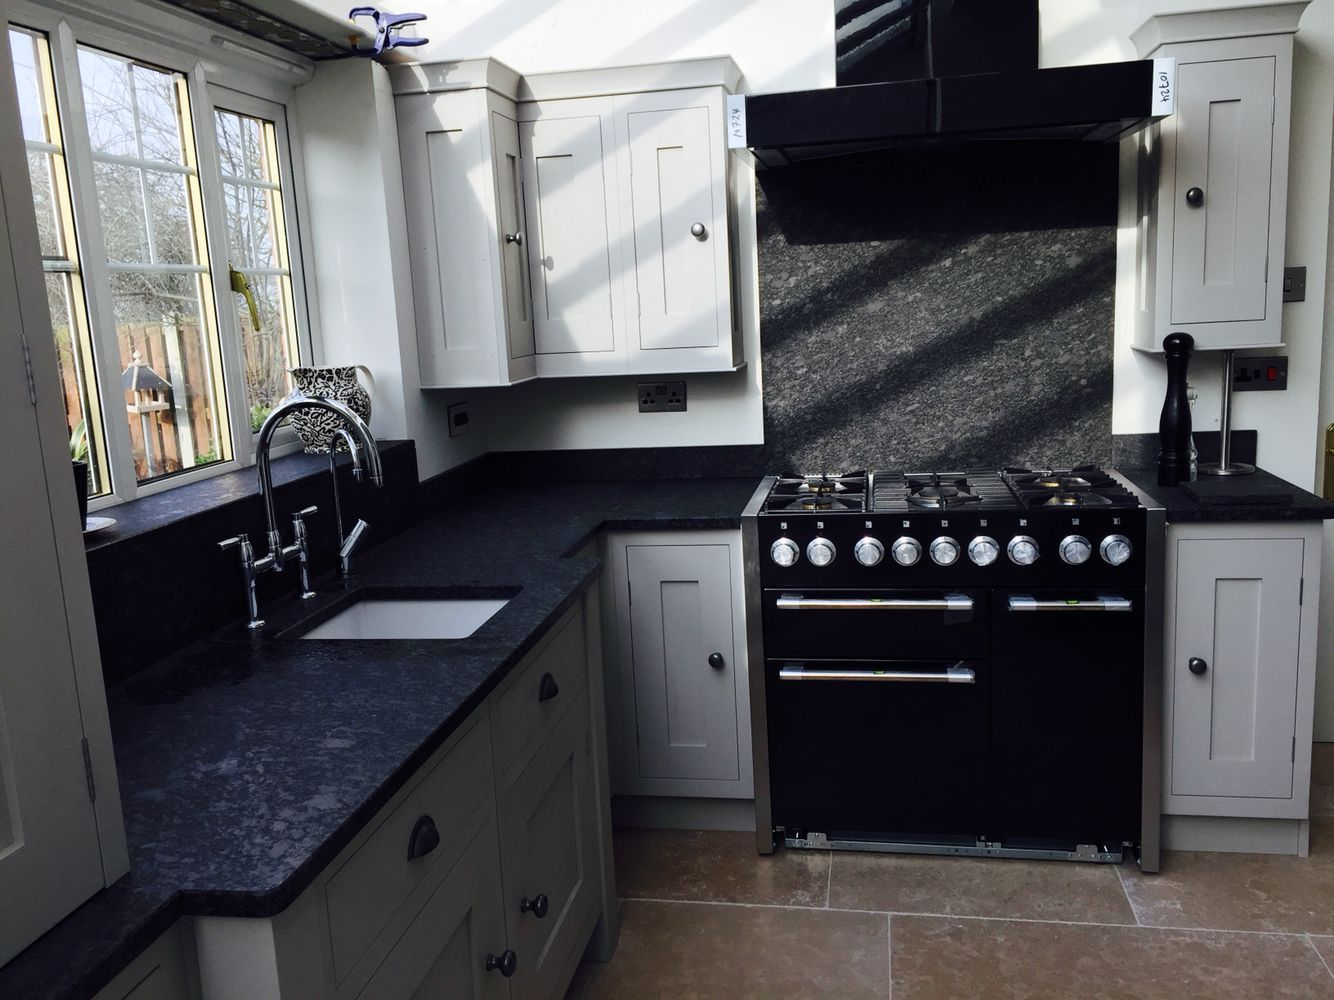 Best Hand Panted Kitchen In Farrow And Ball Purbeck Stone With 400 x 300